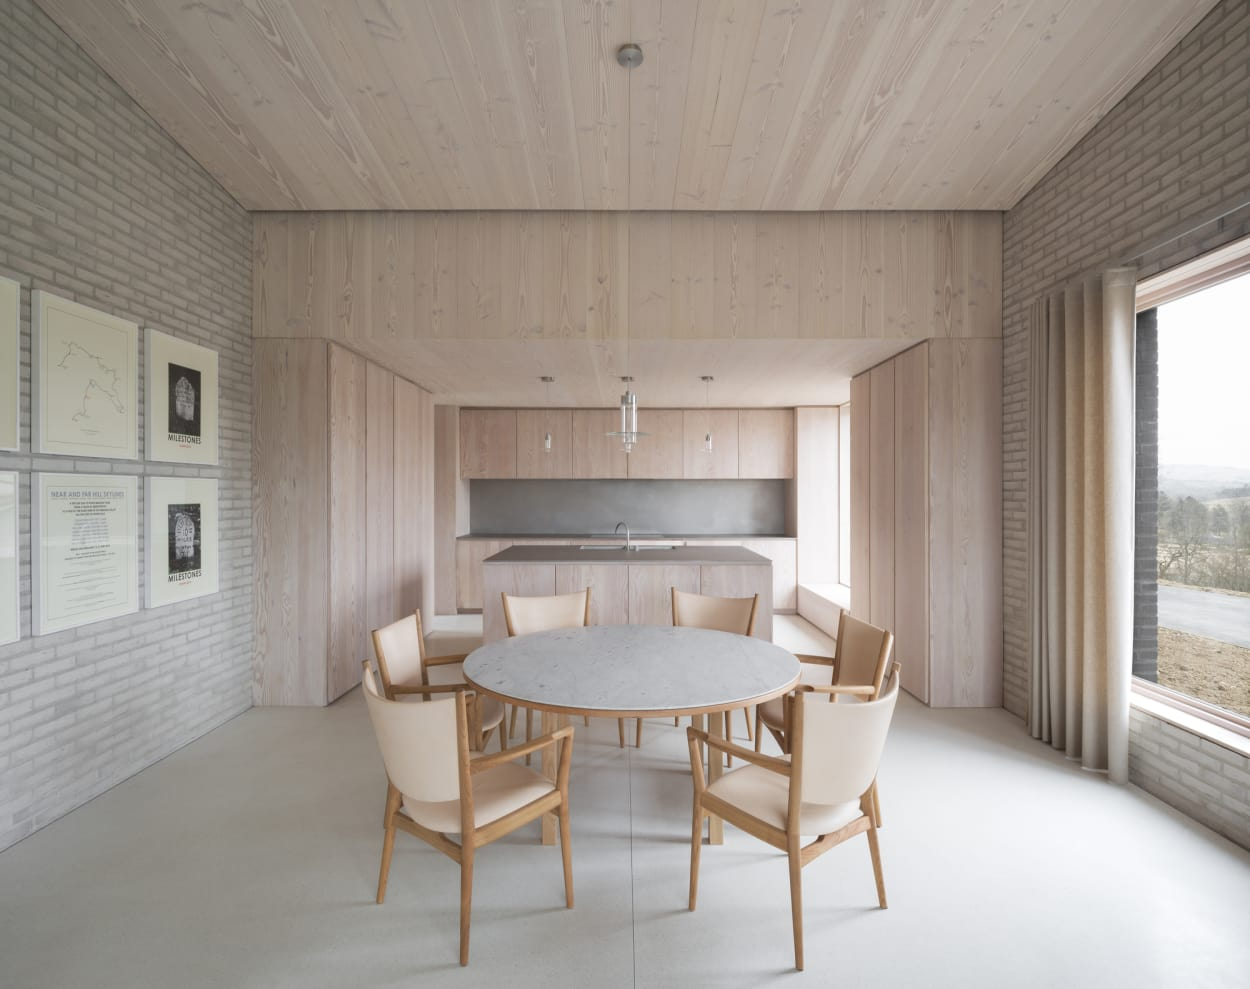 John Pawson, Living Architecture, The Life House, Lebenshaus, Holzdecke